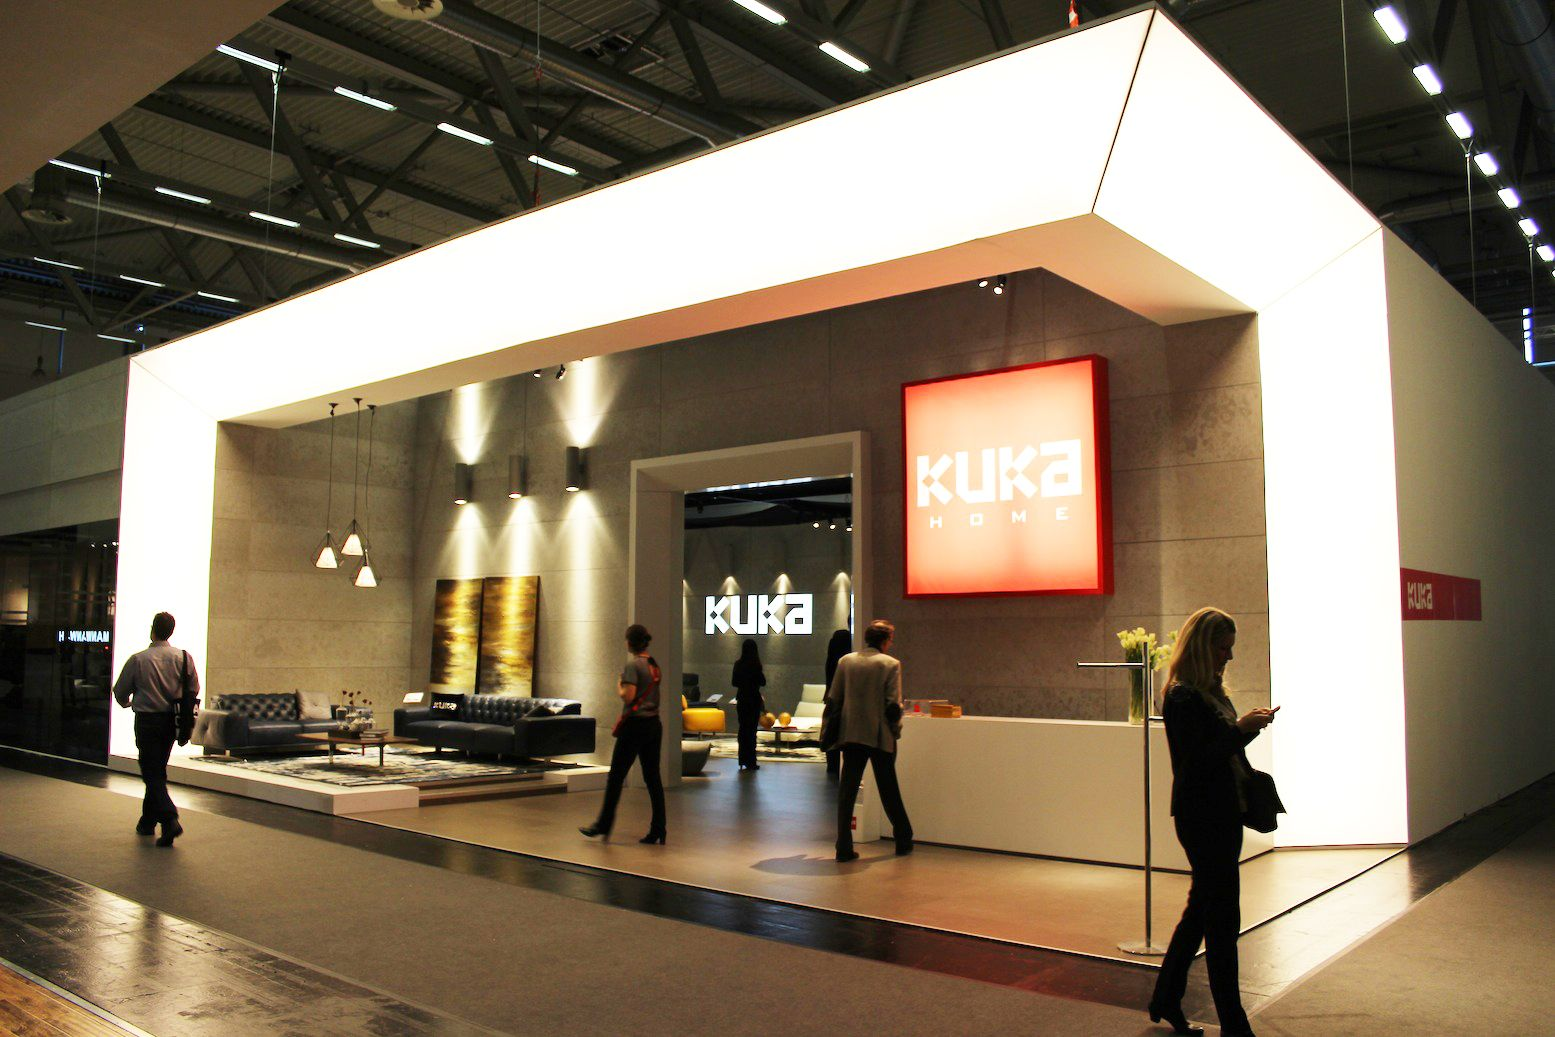 Kuka at imm cologne 2014 stands booths design for Arquitectura y diseno stands 8 pdf